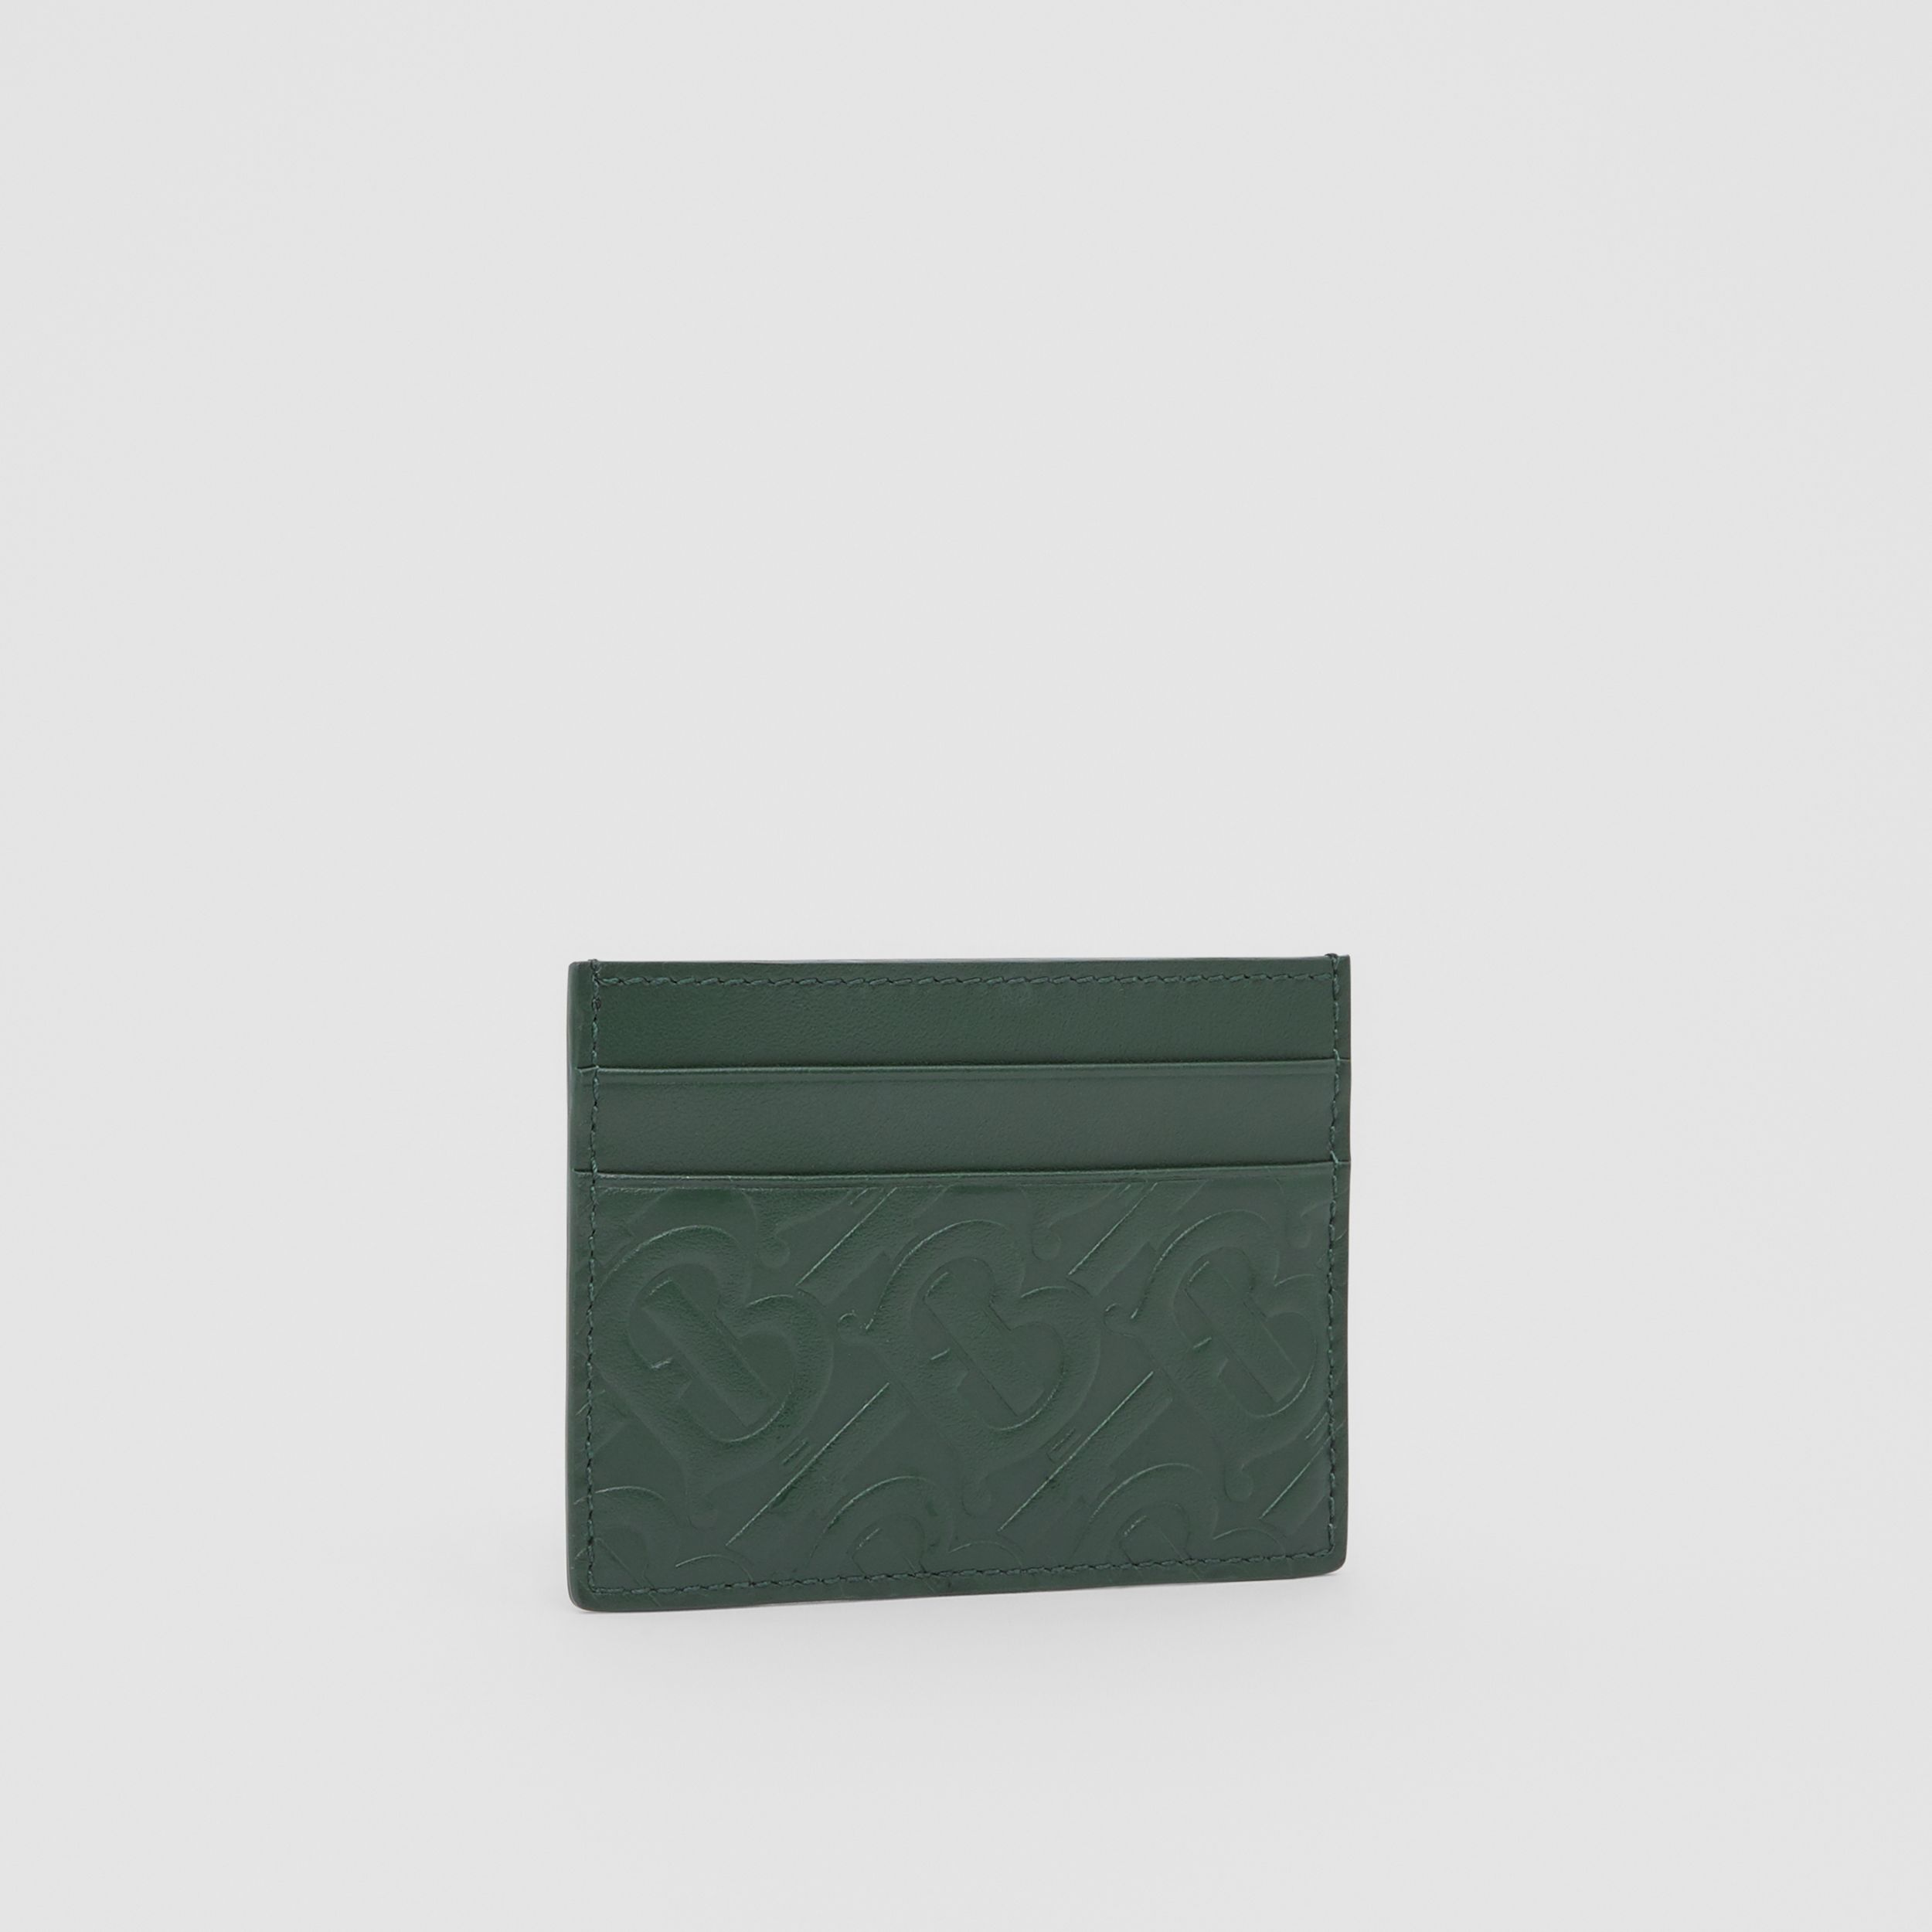 Monogram Leather Card Case in Dark Pine Green - Men | Burberry - 4